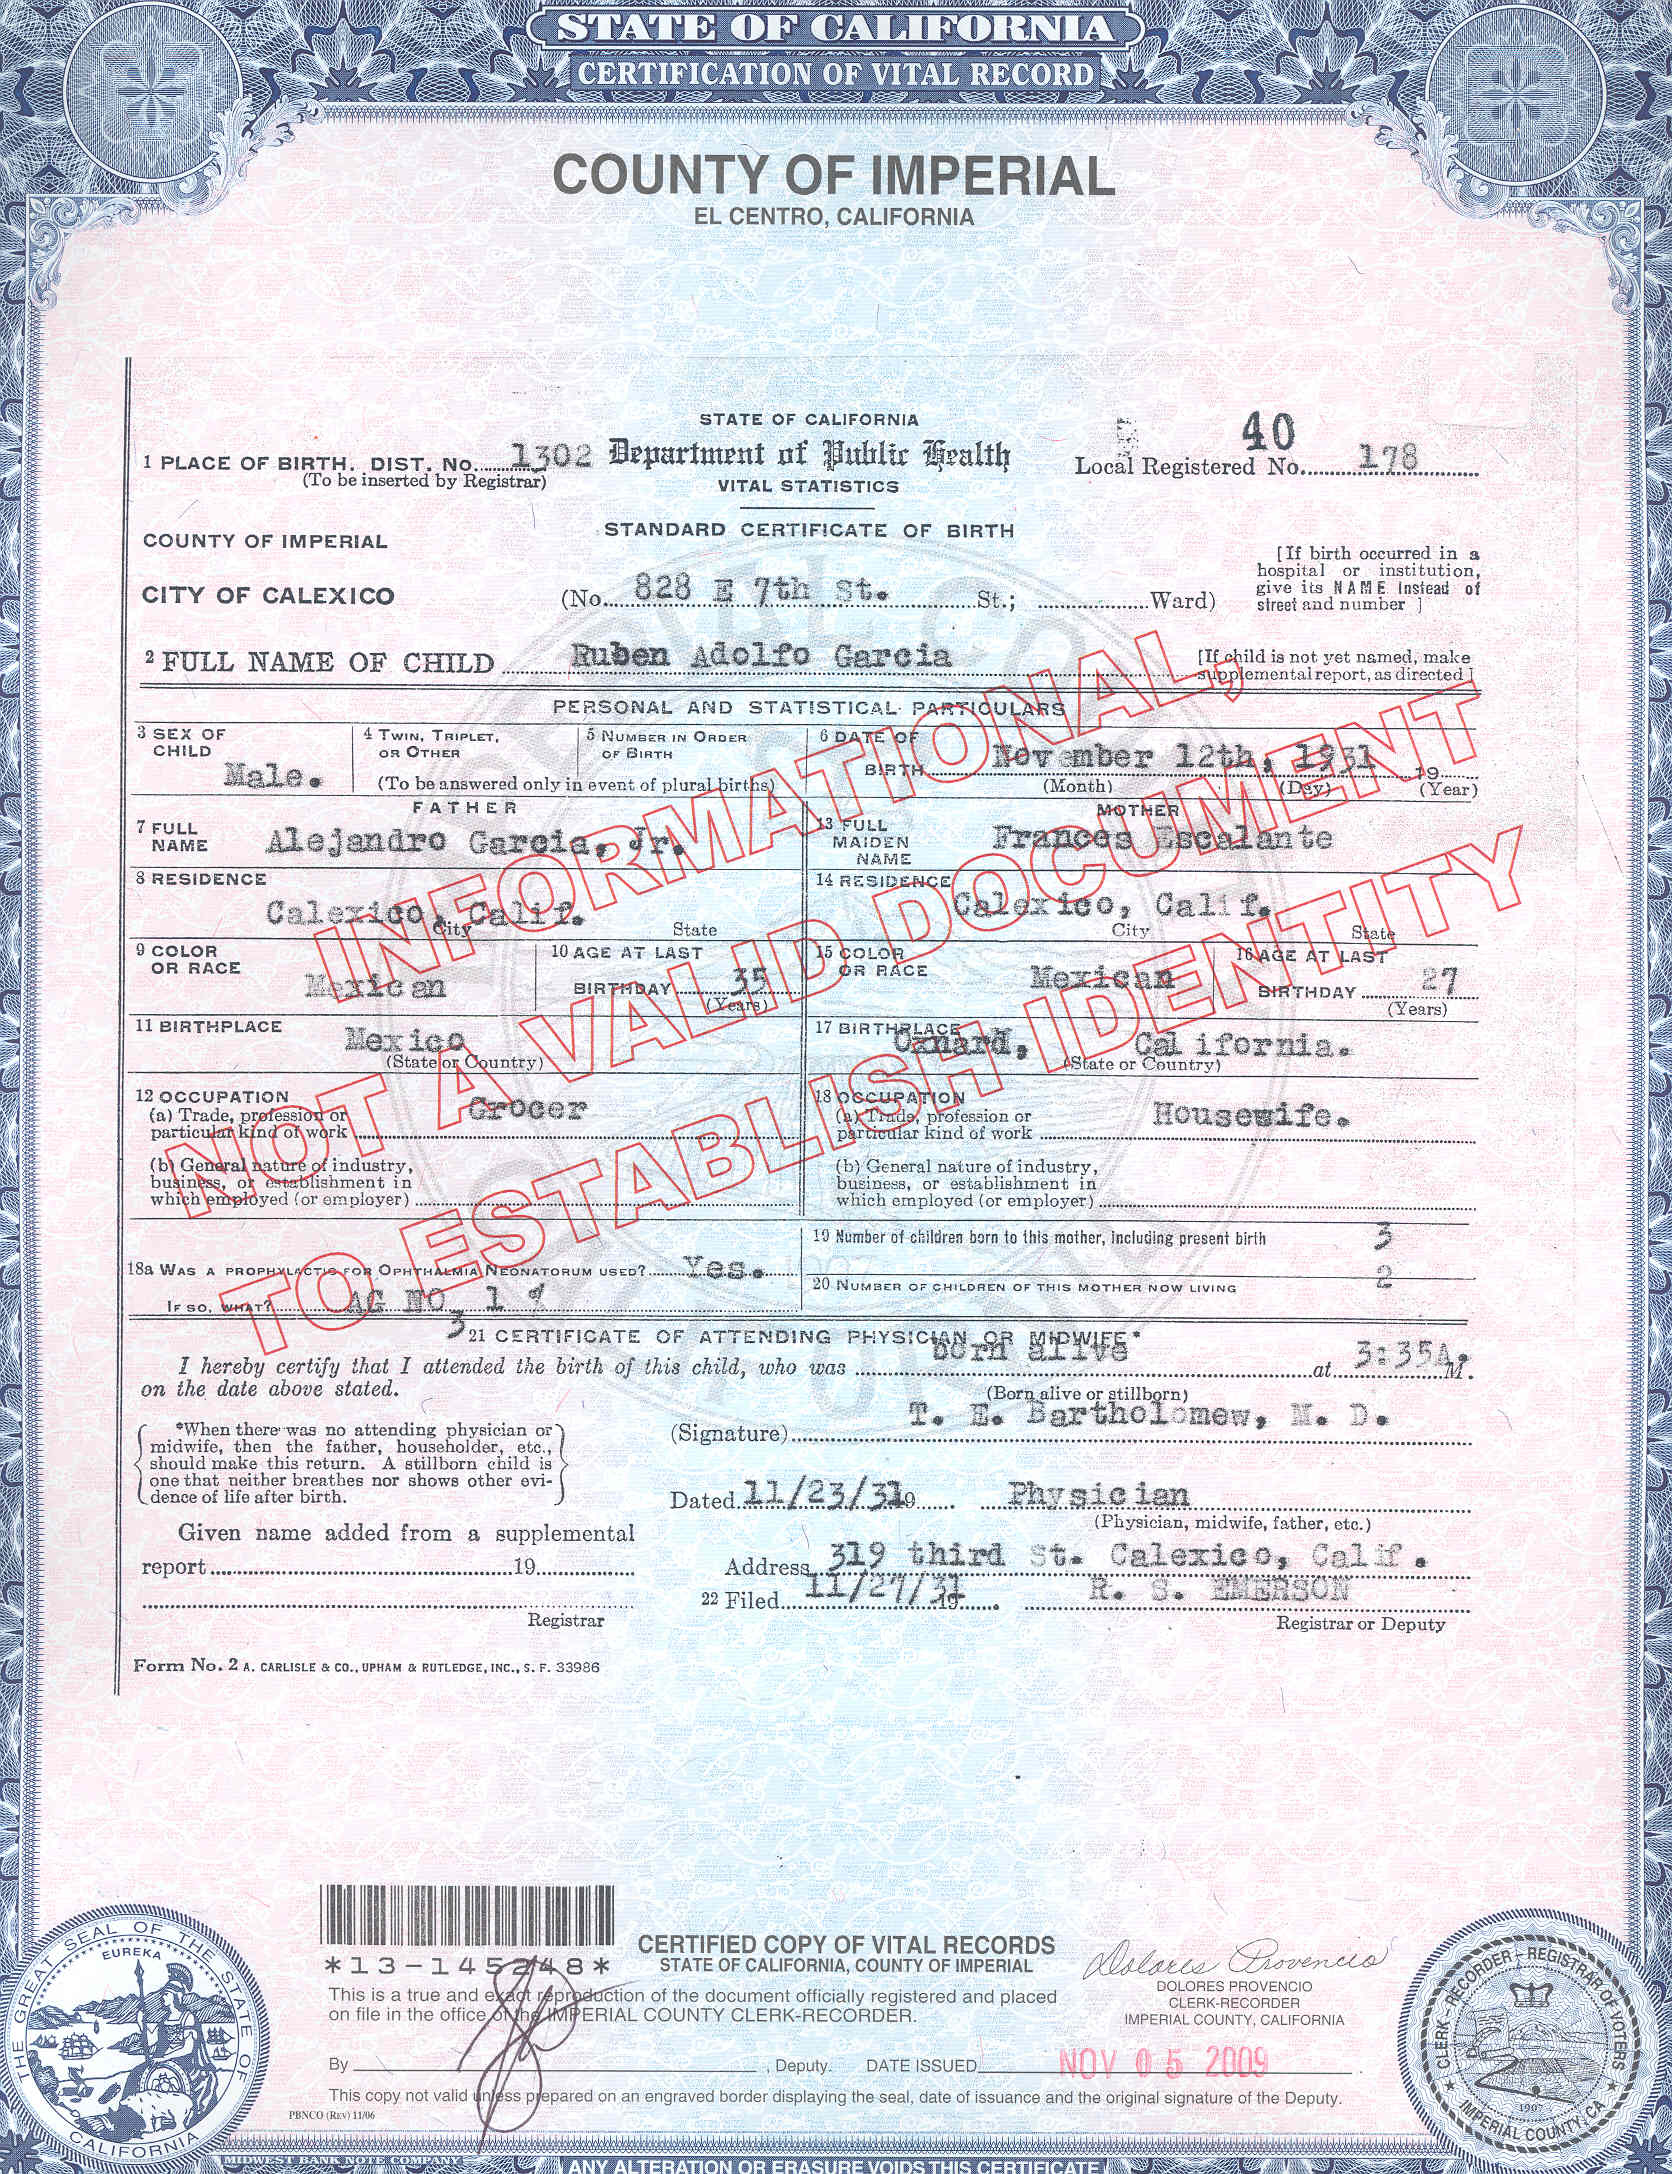 Beautiful photograph of birth certificate san jose business tneranch from birth certificate san jose image source tneranch aiddatafo Images